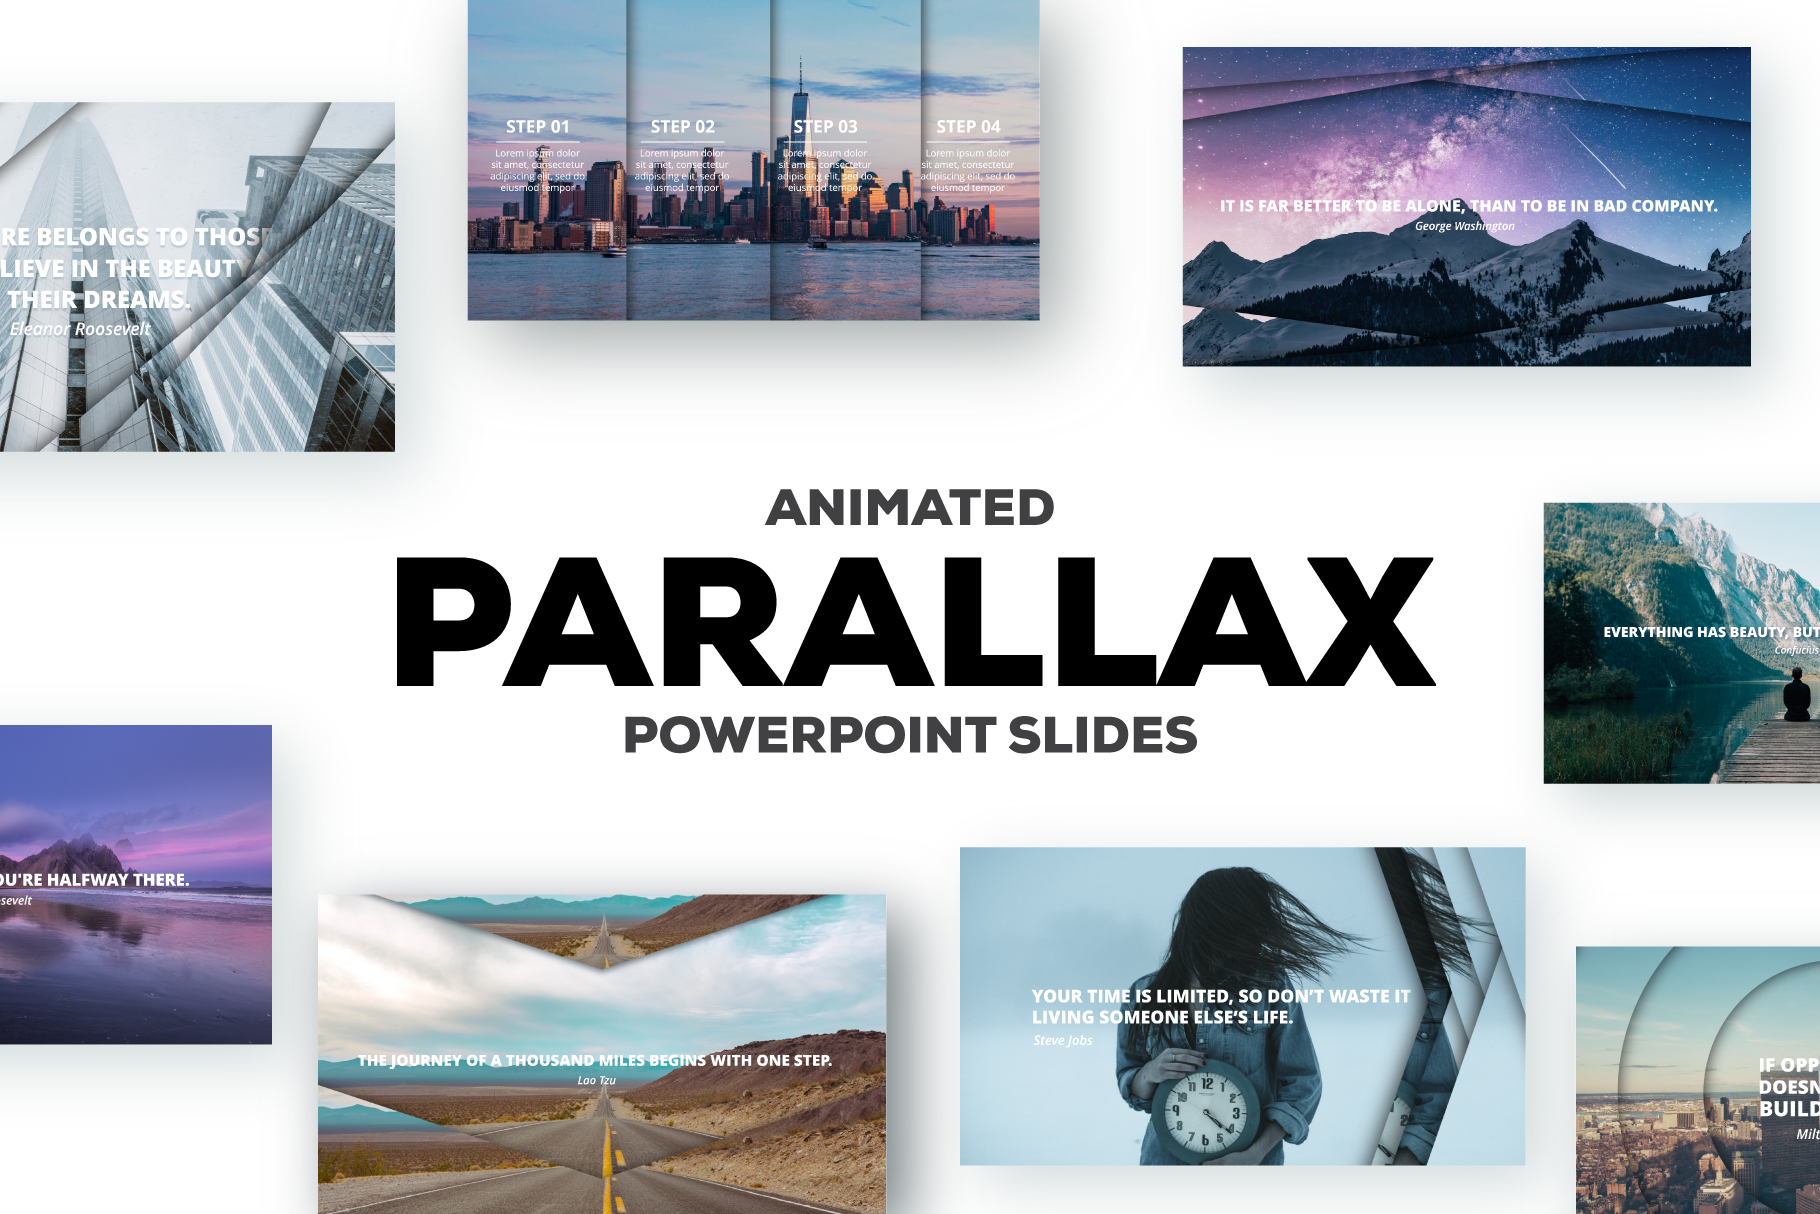 Parallax Powerpoint Theme: 25 Animated Slides - Main parallax cover